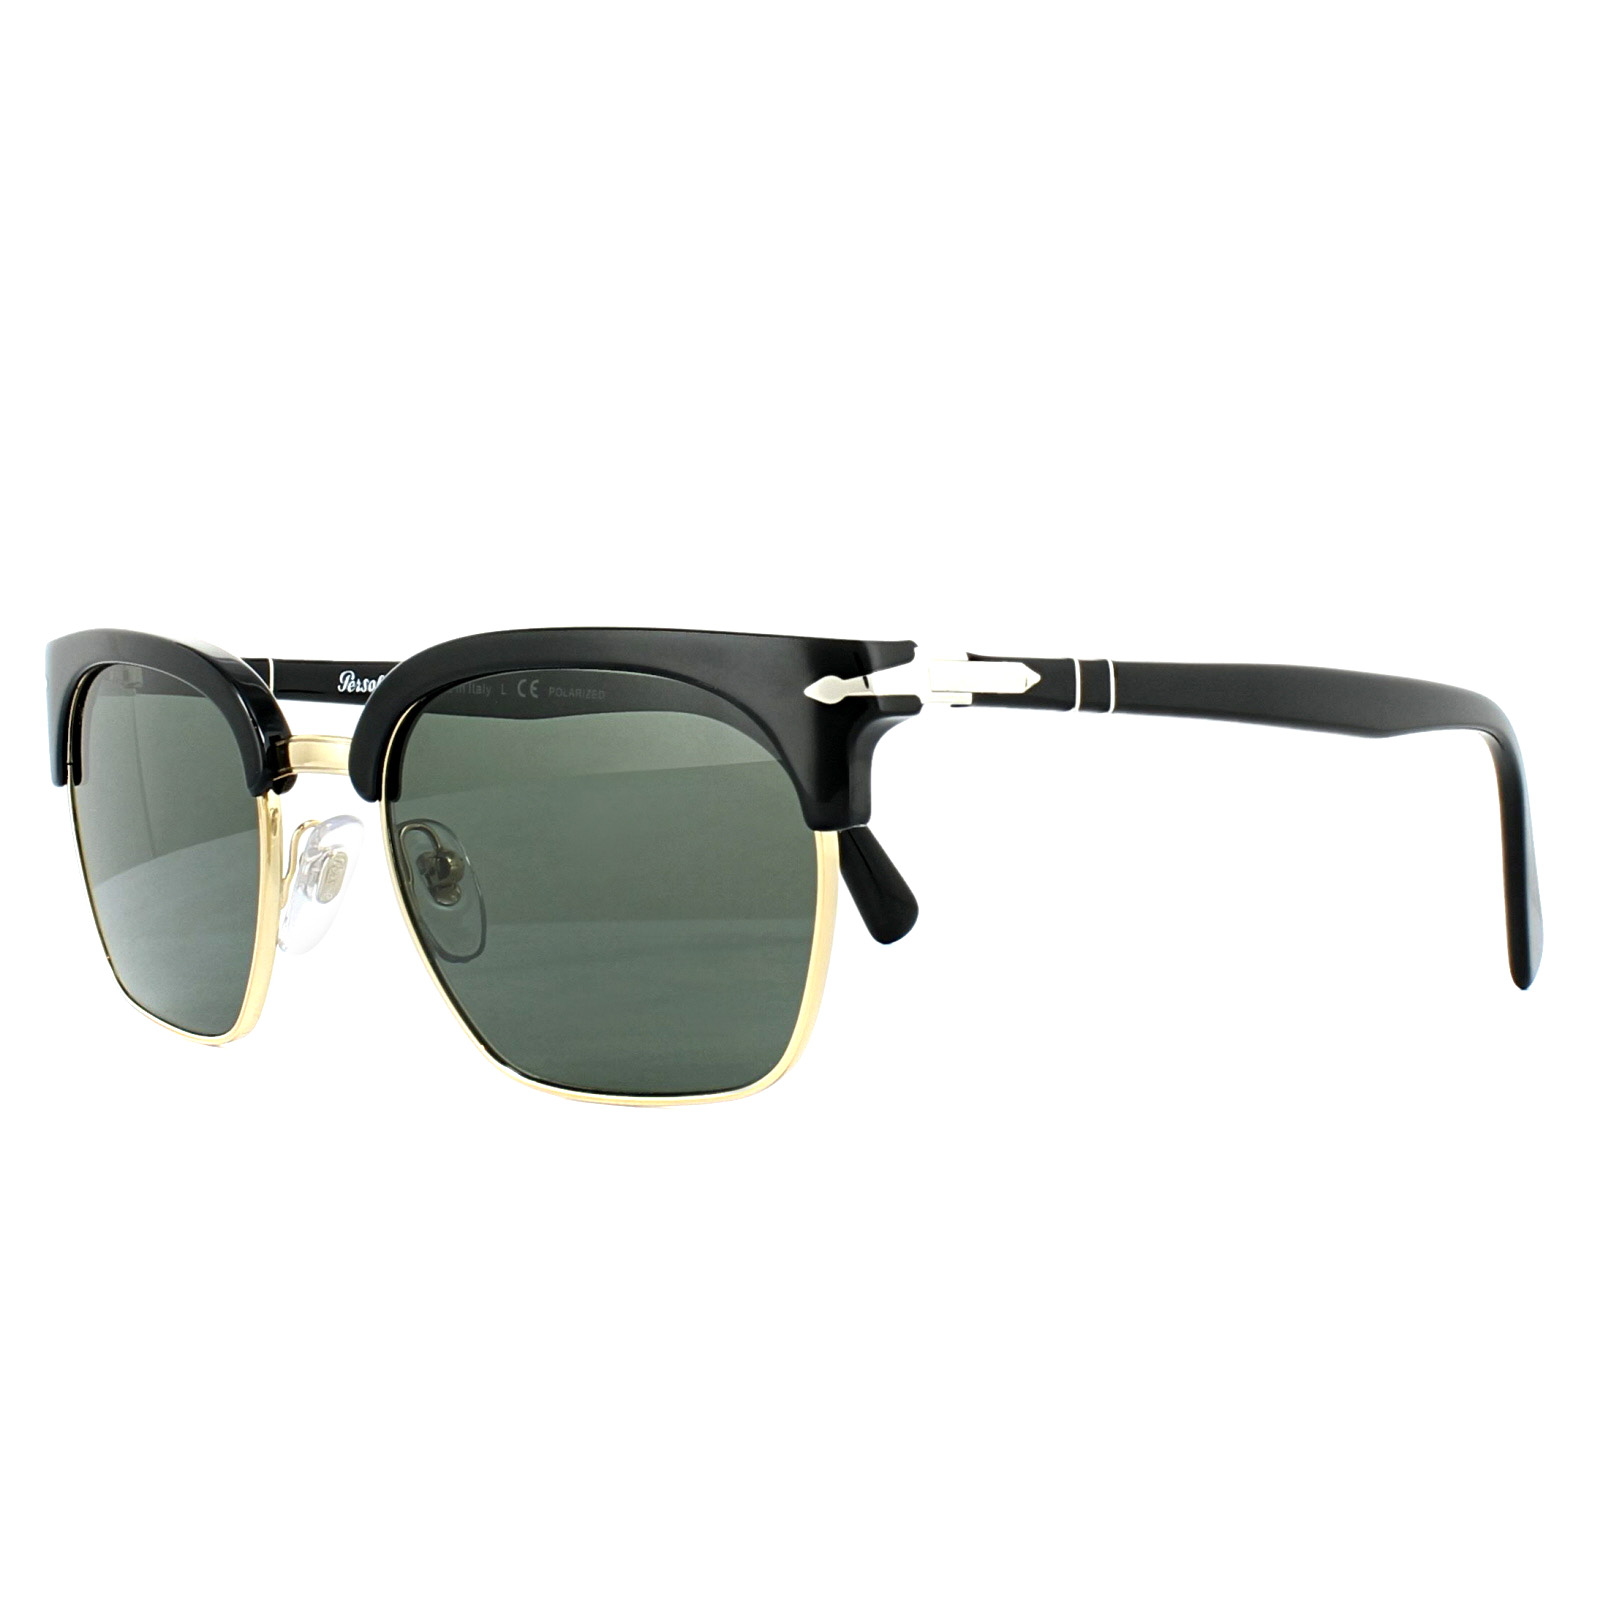 df83df2d2cc38 Persol Sunglasses PO3199S 95 58 Black Green Polarized 8053672870381 ...